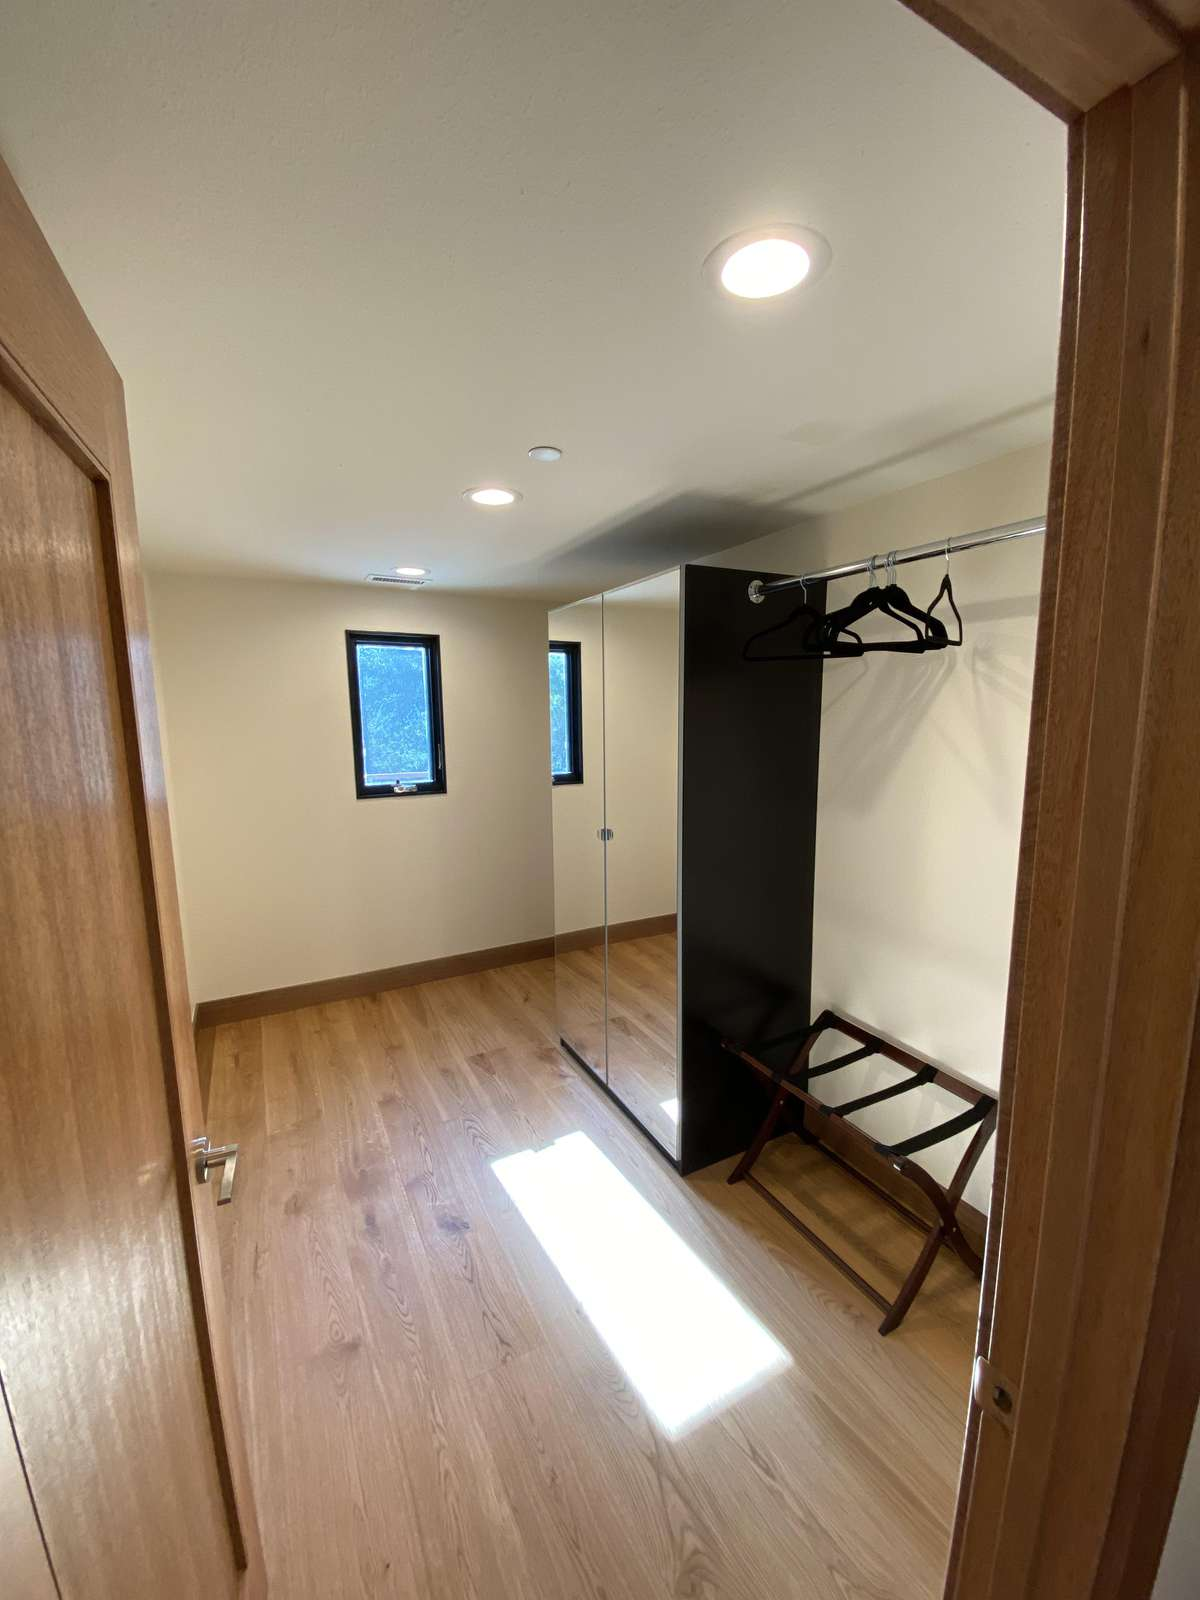 All bedrooms have large walk-in closets